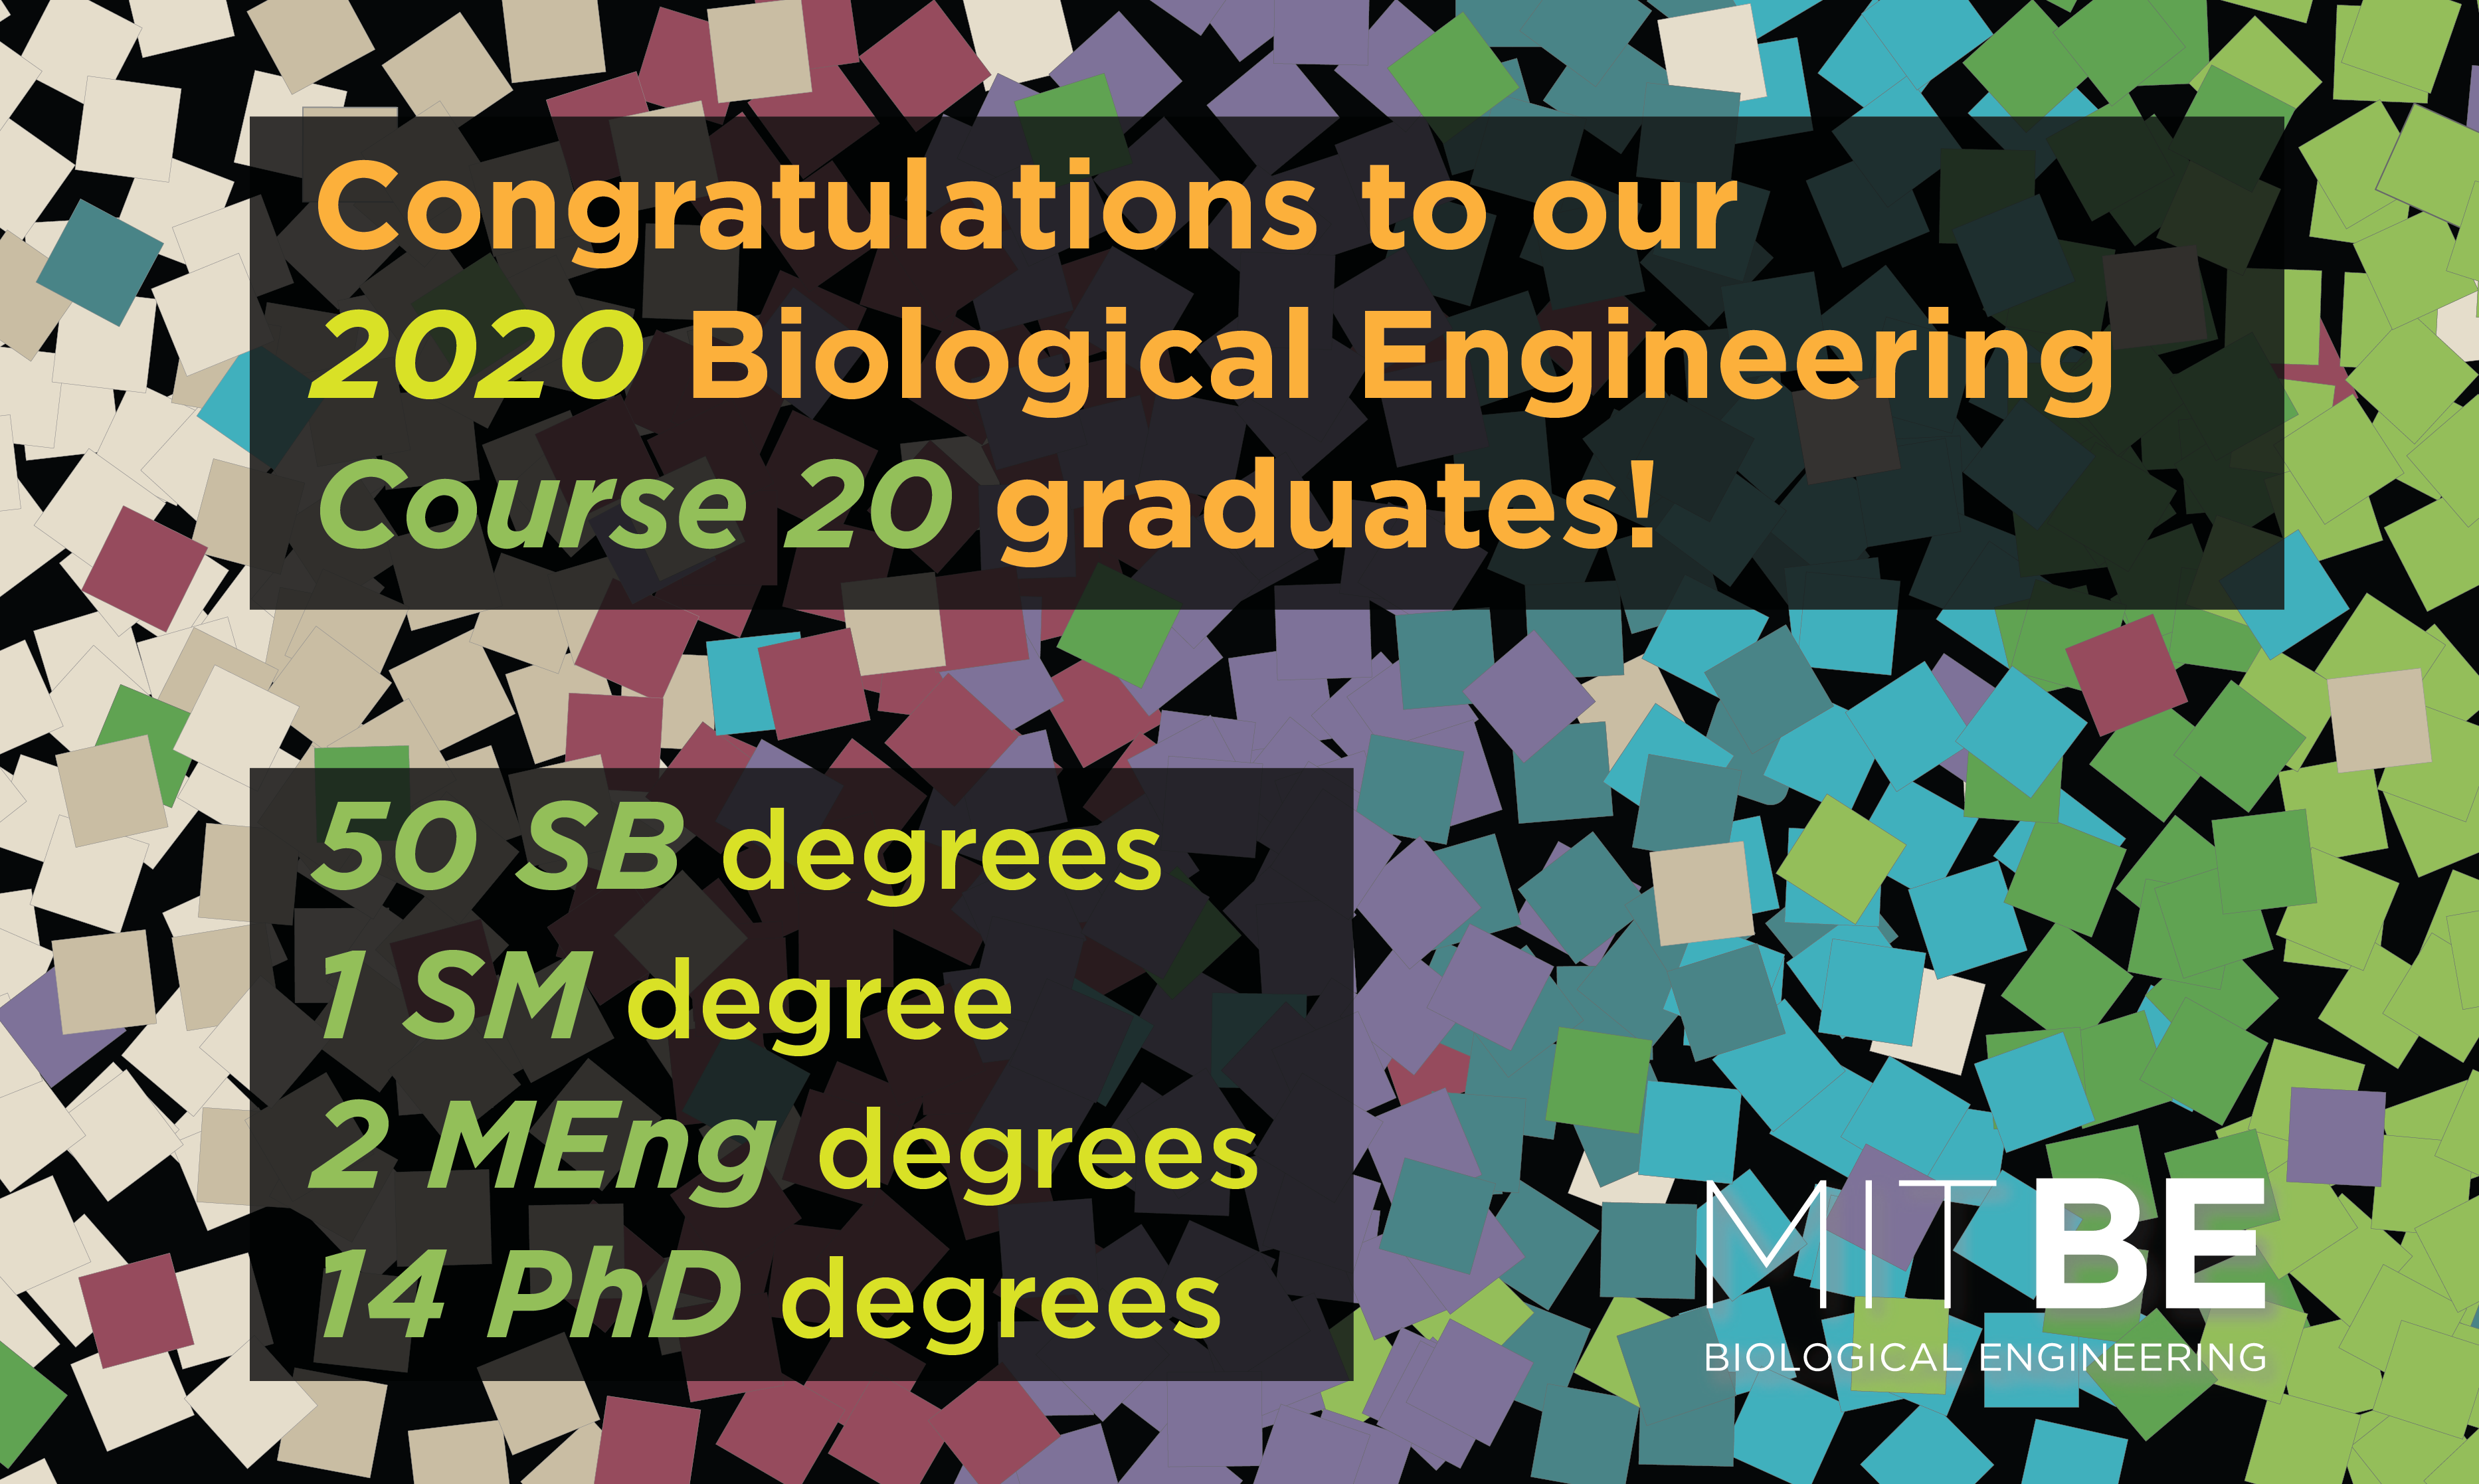 congratulations to our 2020 biological engineering course 20 graduates!